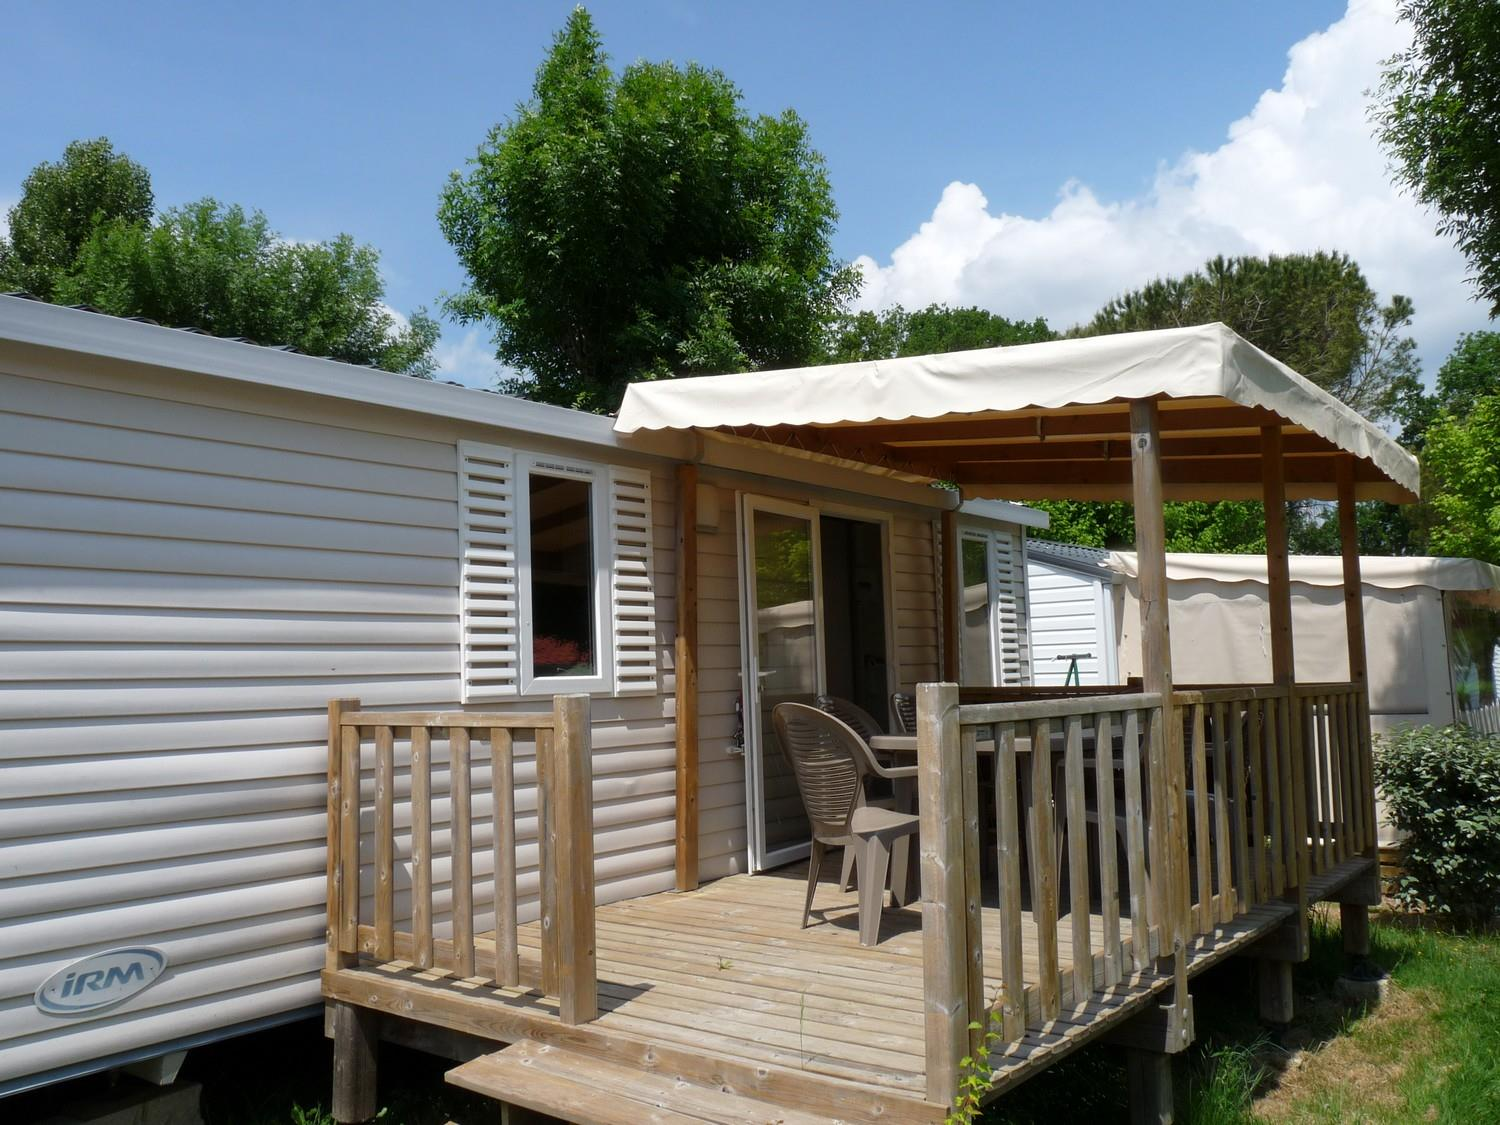 Location - Mobilhome Cactus  2 Chambres  28M²,  Terrasse Couverte - Camping Aloe